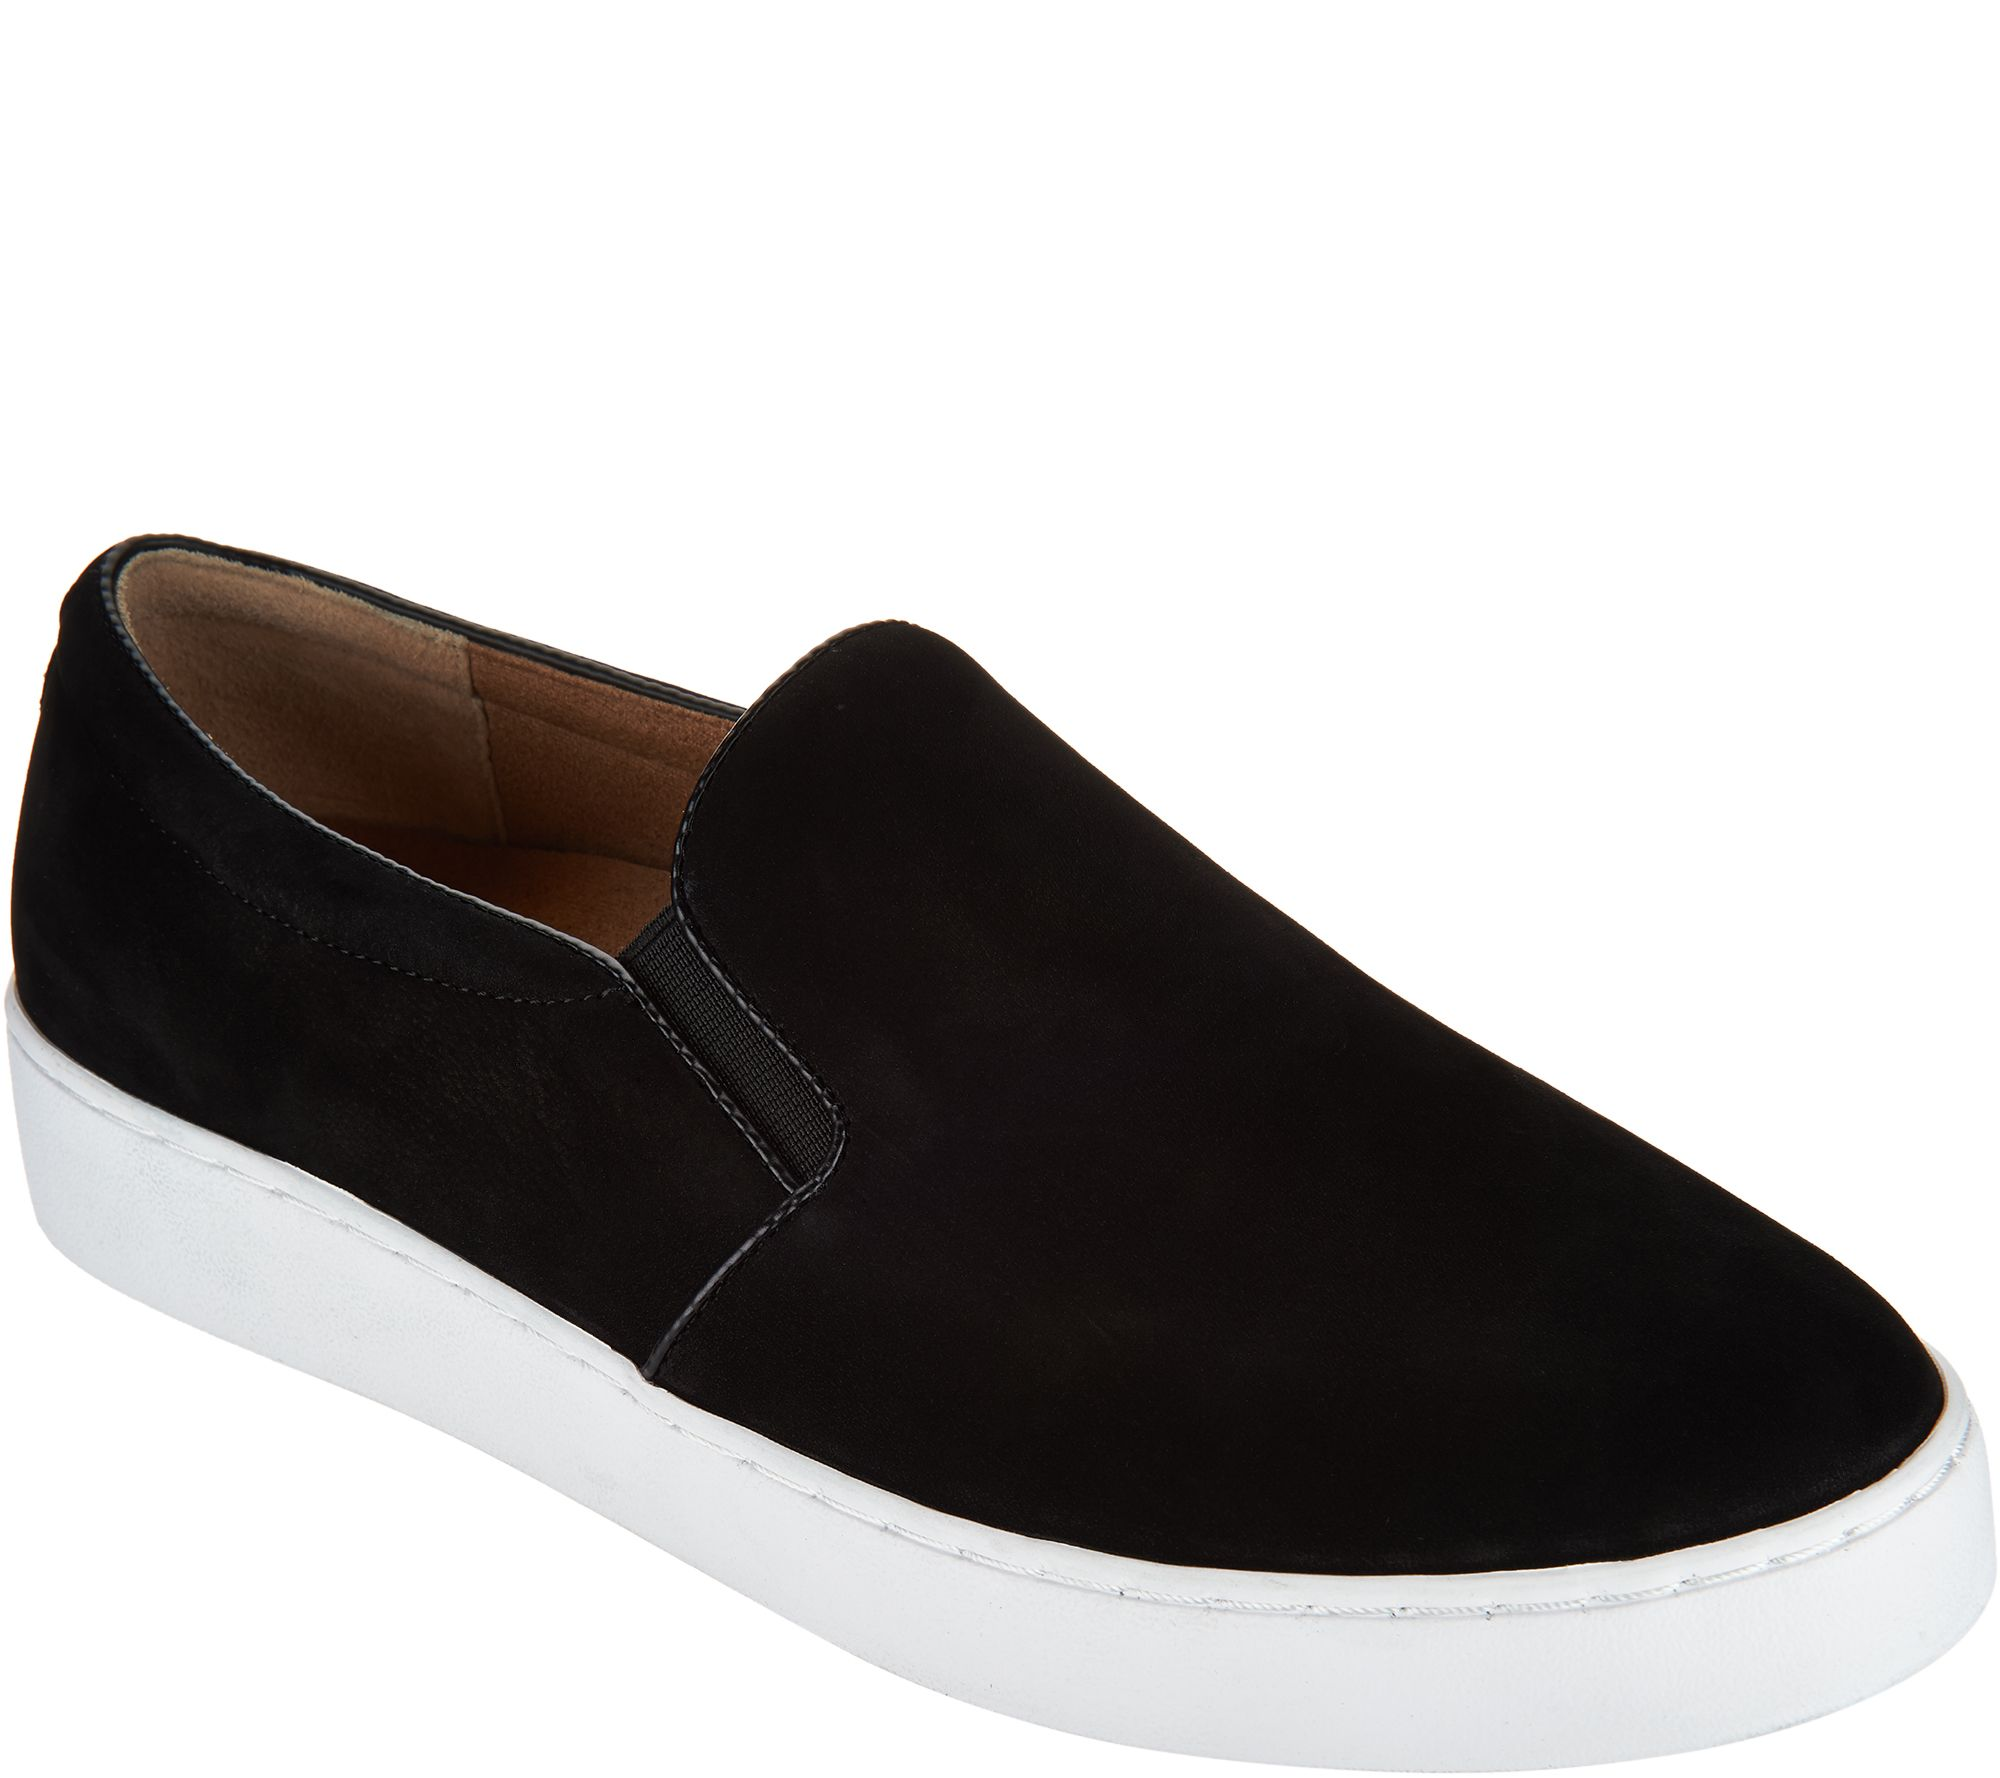 Bedroom Shoes. Vionic Orthotic Leather or Suede Slip On Shoes  Midi A293677 Sandals Slippers More QVC com